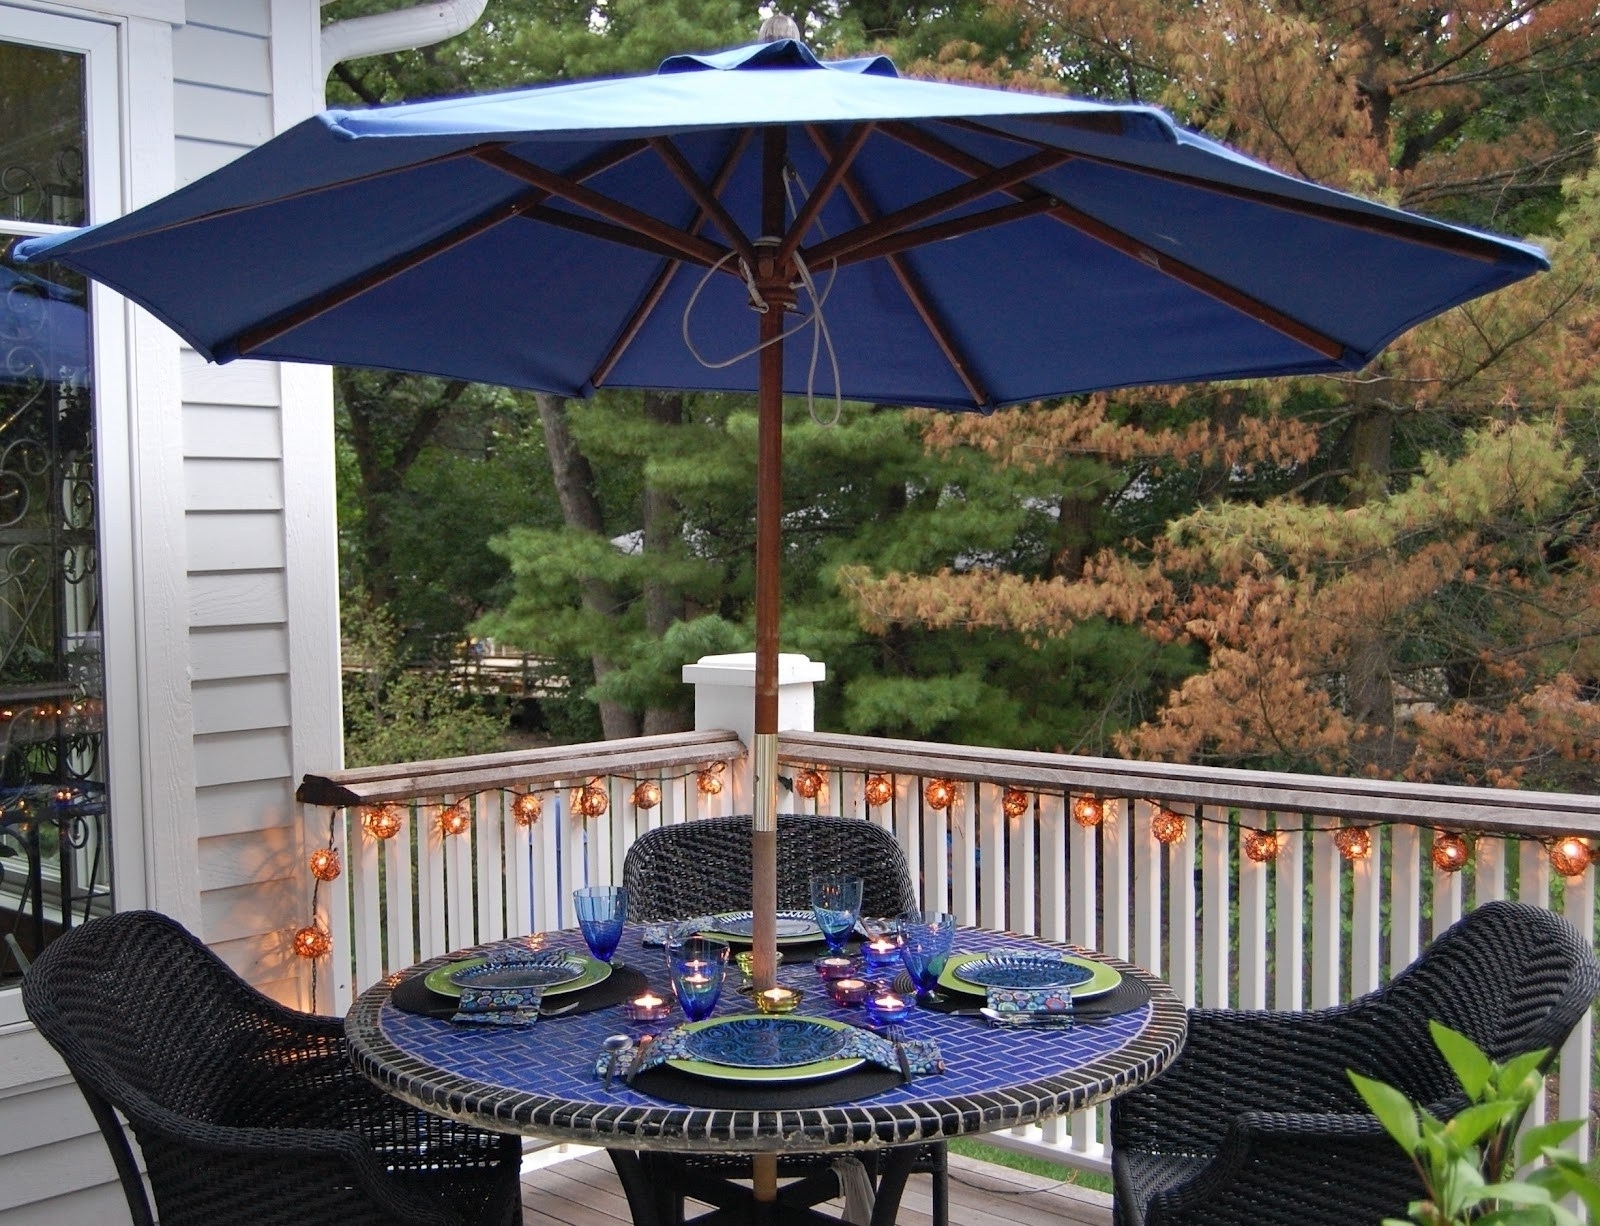 Current Small Patio Tables With Umbrellas Hole Intended For Small Patio Table With Chairs Balcony And Large Umbrella Hole Tables (Gallery 10 of 20)